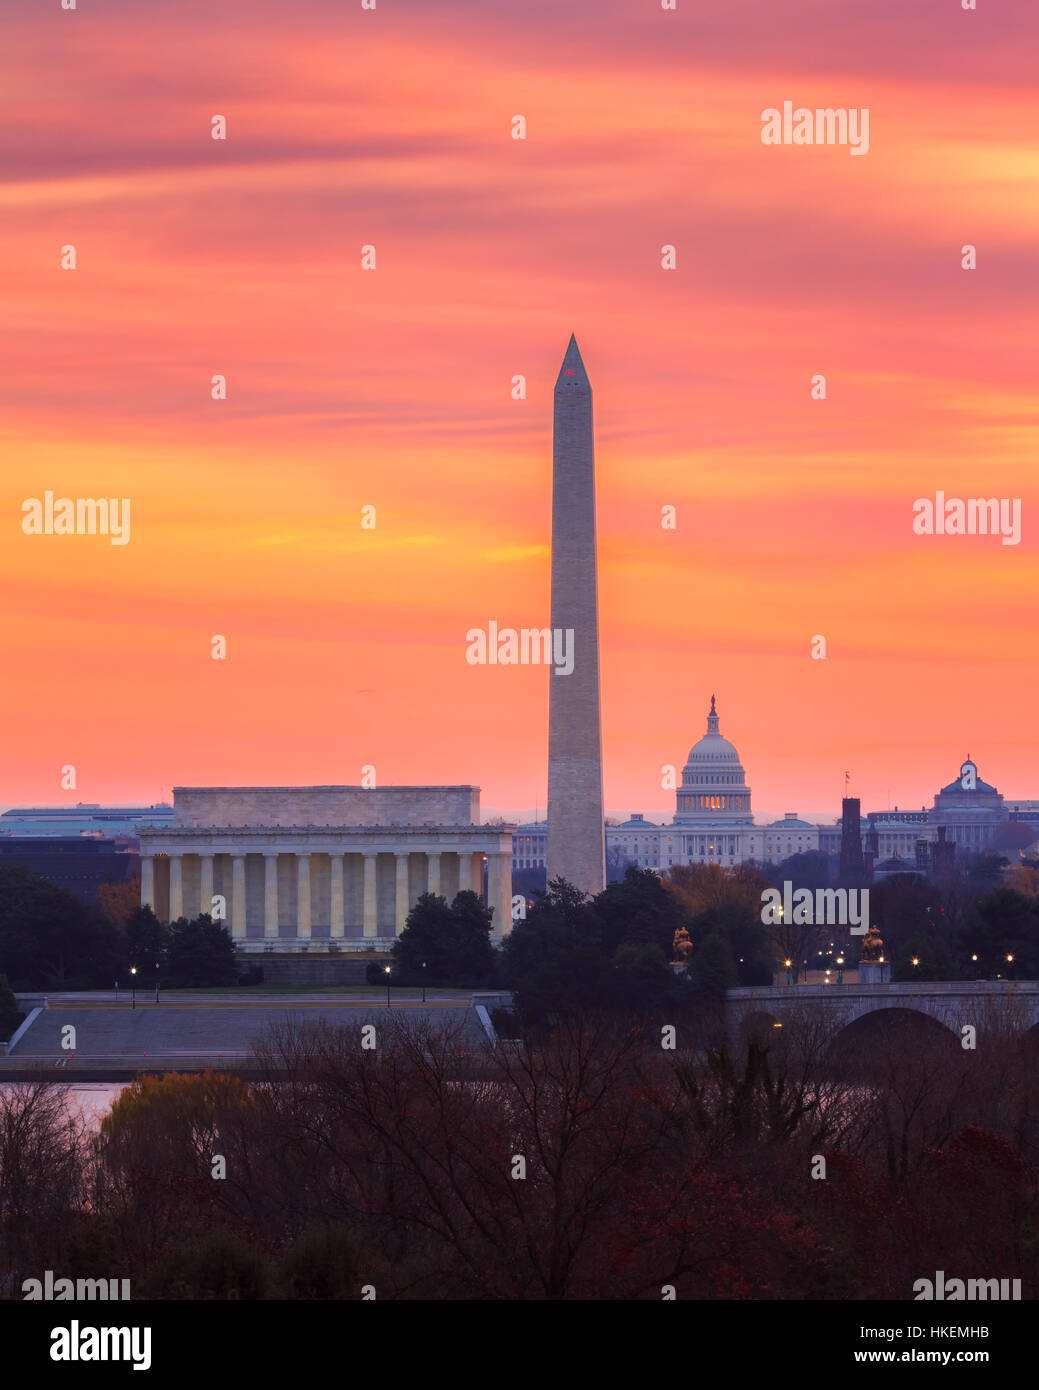 Lever du soleil sur la capitale, Washington, DC Photo Stock